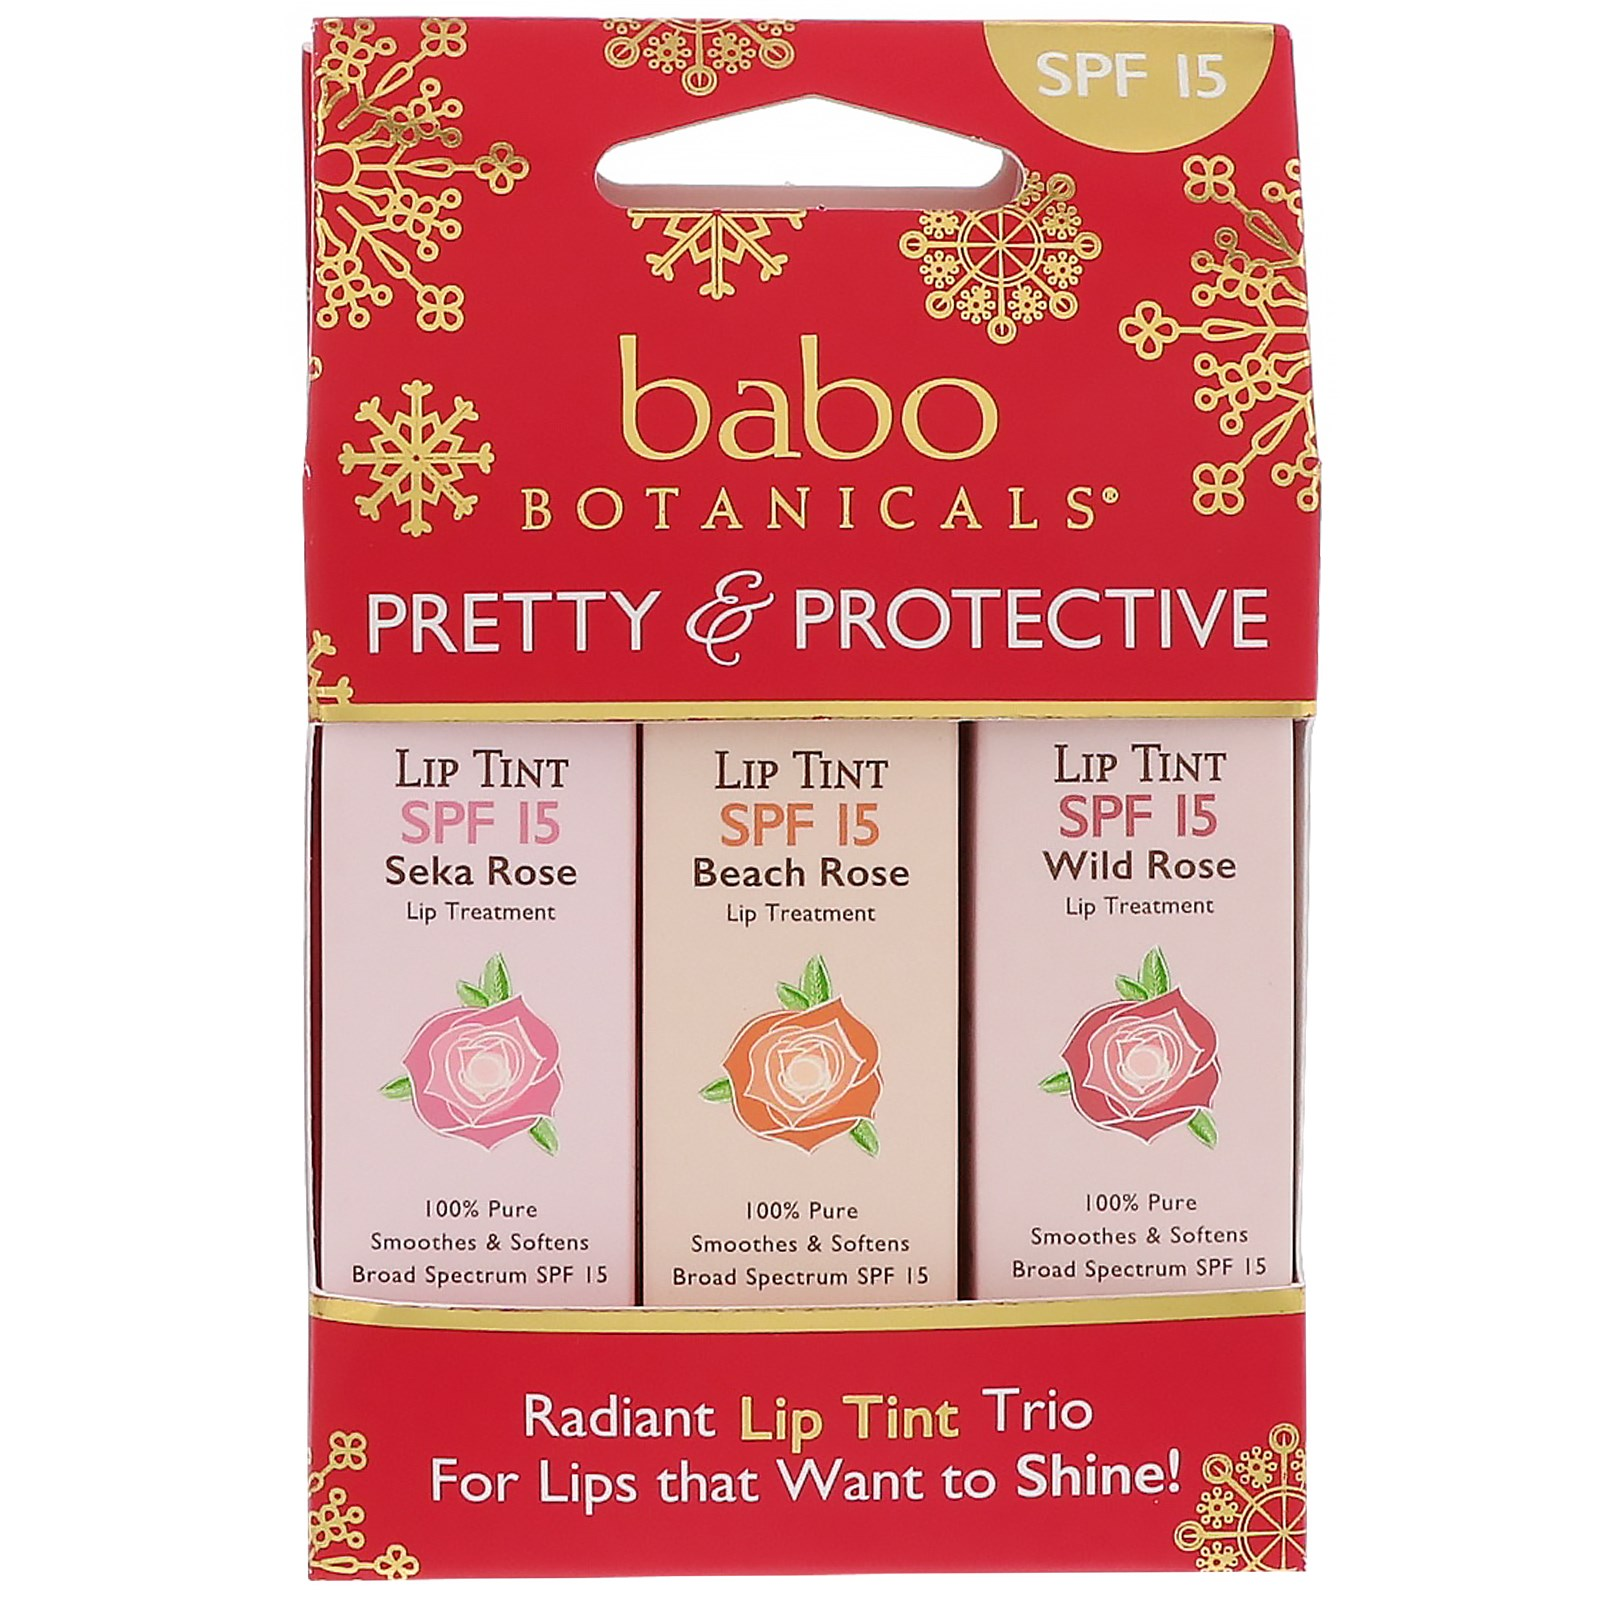 Babo Botanicals, Pretty & Protective, Lip Tint Conditioner, SPF 15, 3 Pack, 0.15 oz (Each)